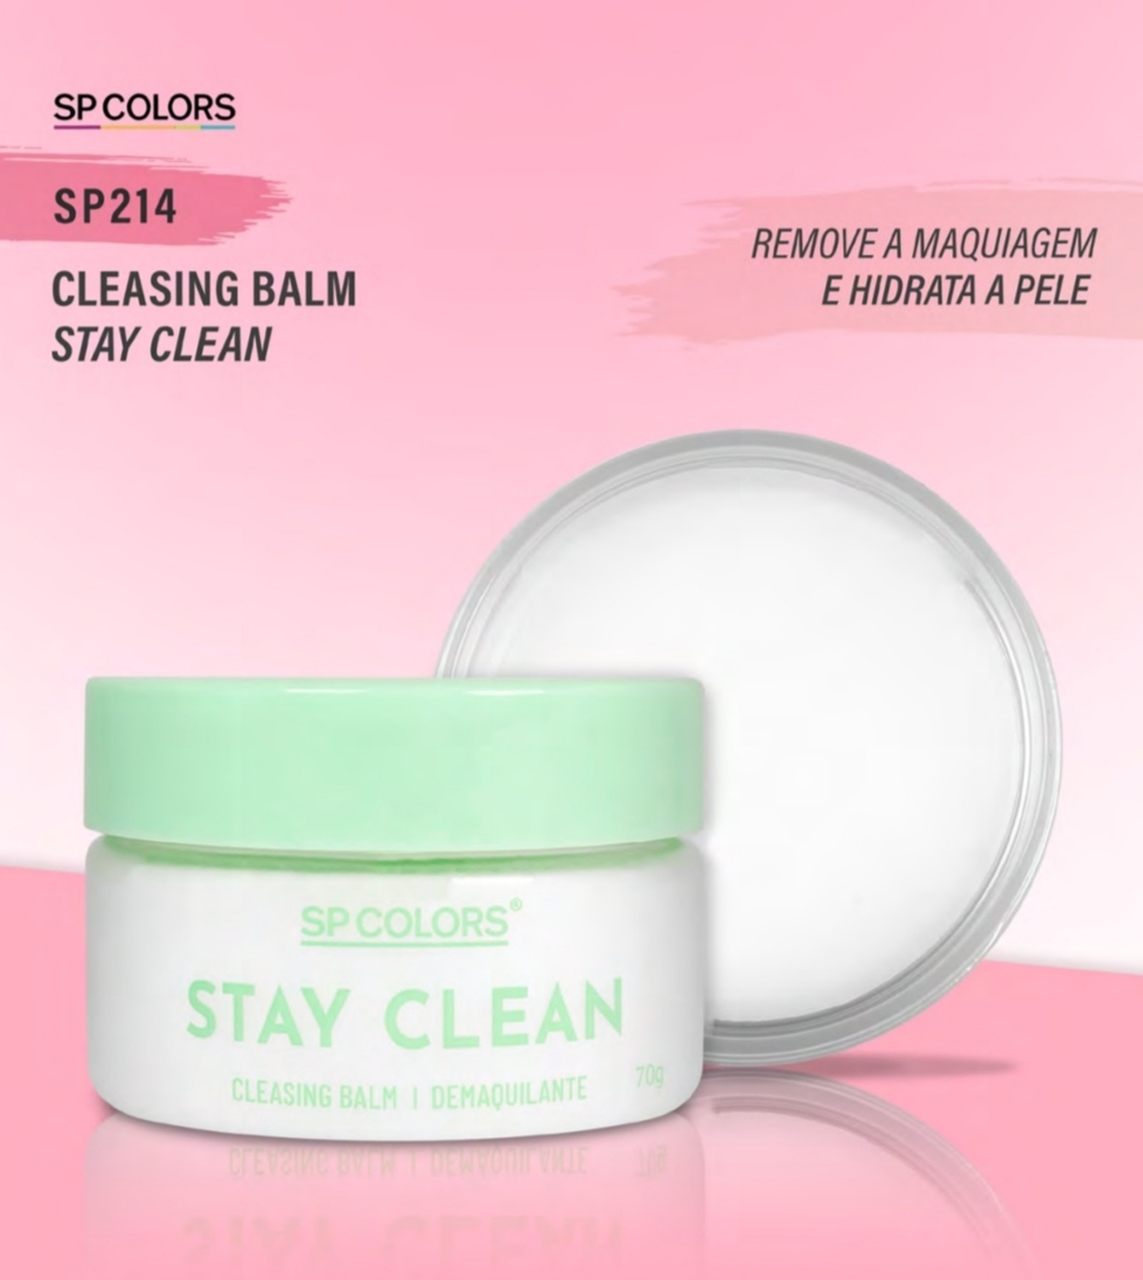 Cleasing Balm Stay Clean Demaquilante SP Colors